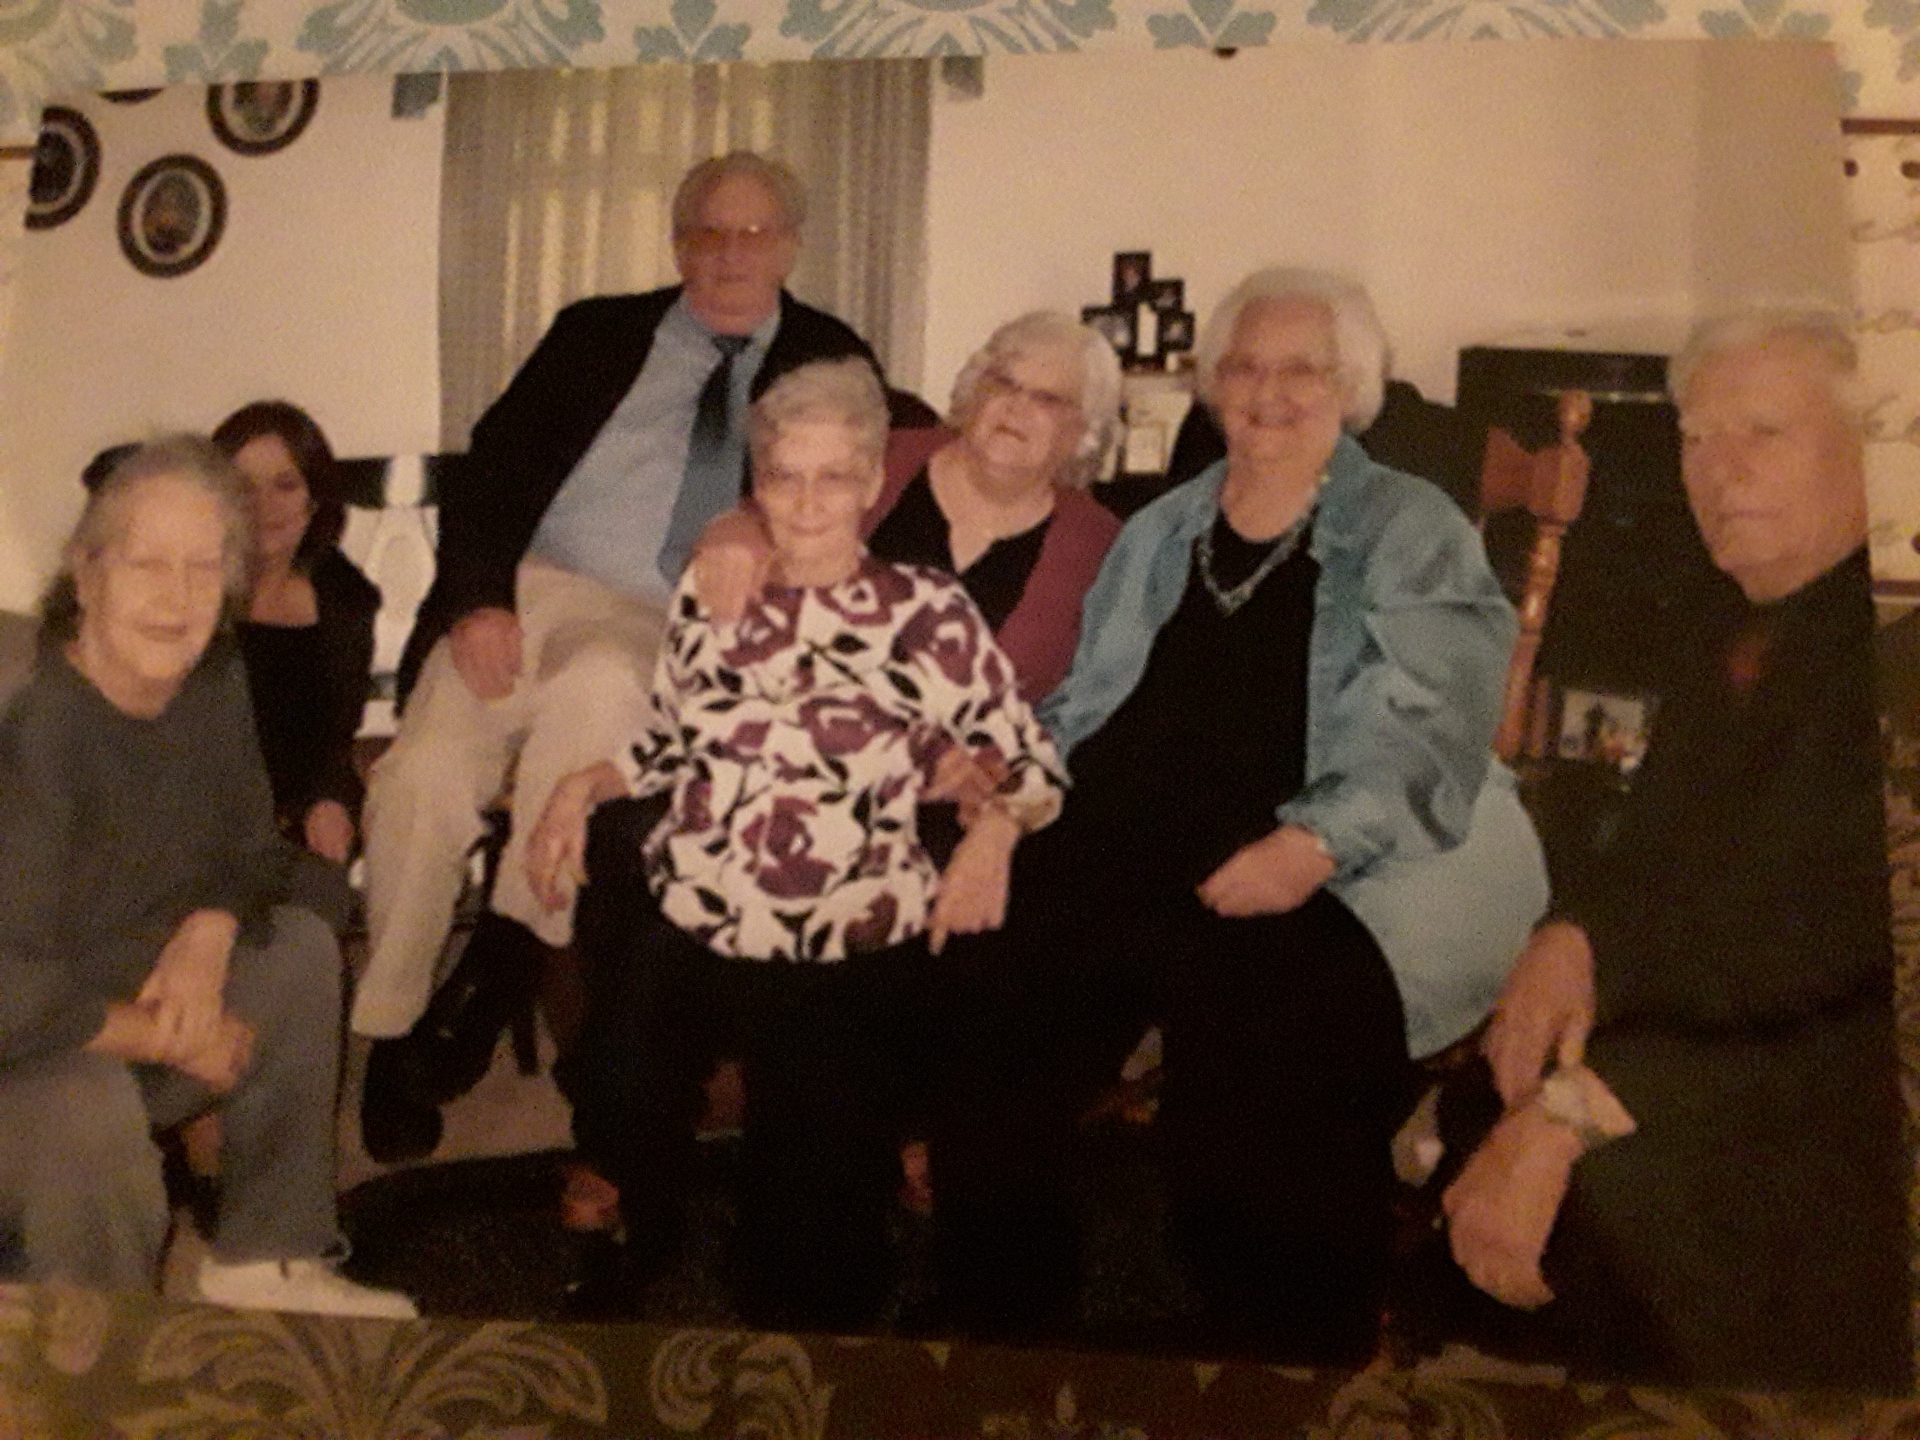 2010 at after gathering for uncle Bill's Memorial.   Possibly last pic of all sibs together.